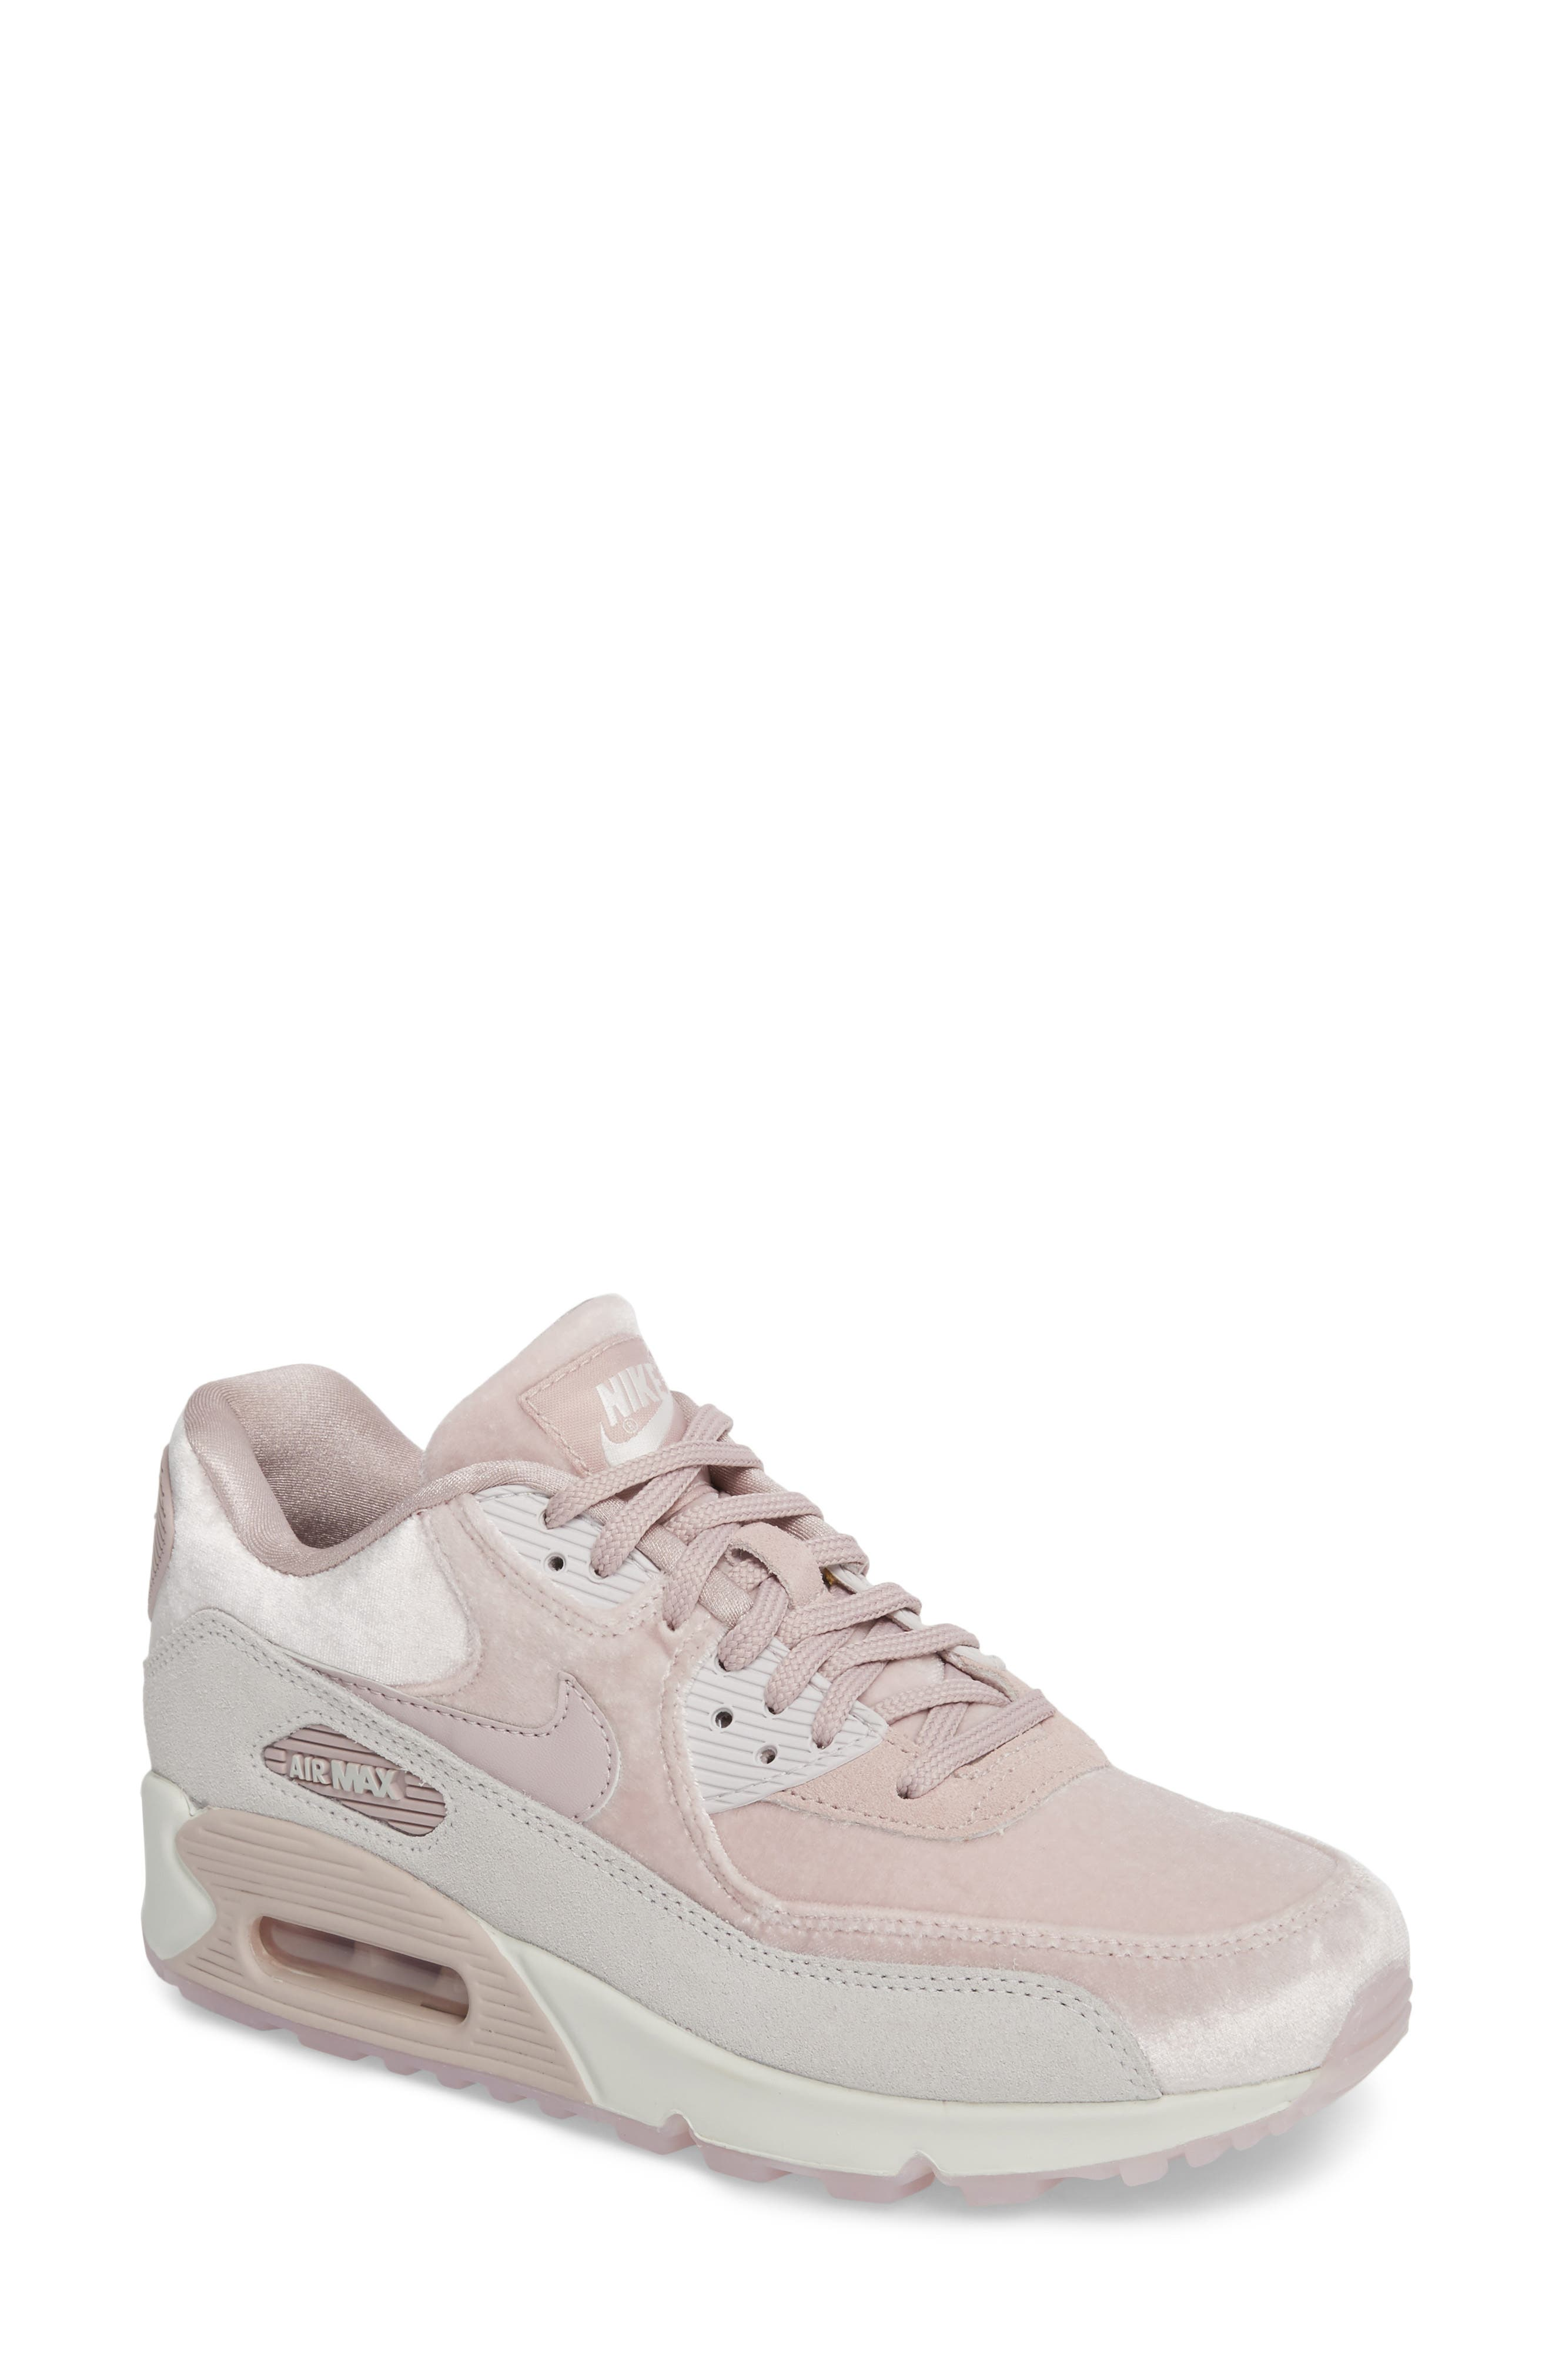 Air Max 90 LX Sneaker,                         Main,                         color, Particle Rose/ Particle Rose